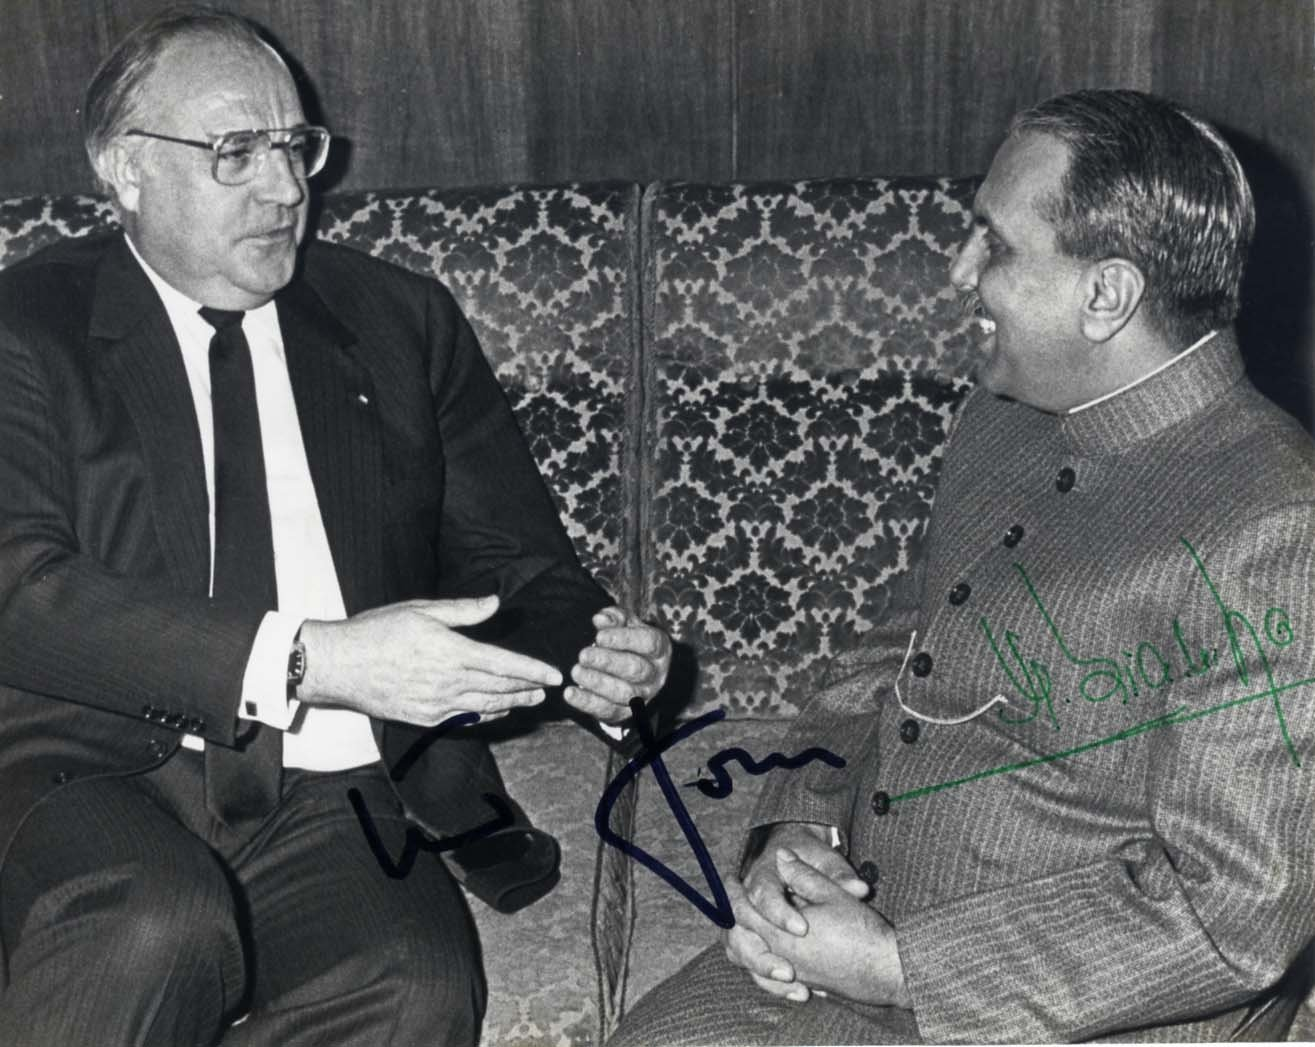 Zia-ul-Haq, Muhammad & Kohl, Helmut - Autograph Muhammad & Helmut Zia-ul-Haq & Kohl (sixth President of Pakistan from 1978 until his death in 1988 &  Zia-ul-Haq, Muhammad & Kohl, Helmut Signed glossy photograph, shows Muhammad Zia-ul-Haq during a meeting with Helmut Kohl (13.03.1985), 6,5 x 5,25 inch, signed by Zia-ul-Haq in green ink and by Kohl in black felt tip, with trimmed edges - in fine to very fine condition.